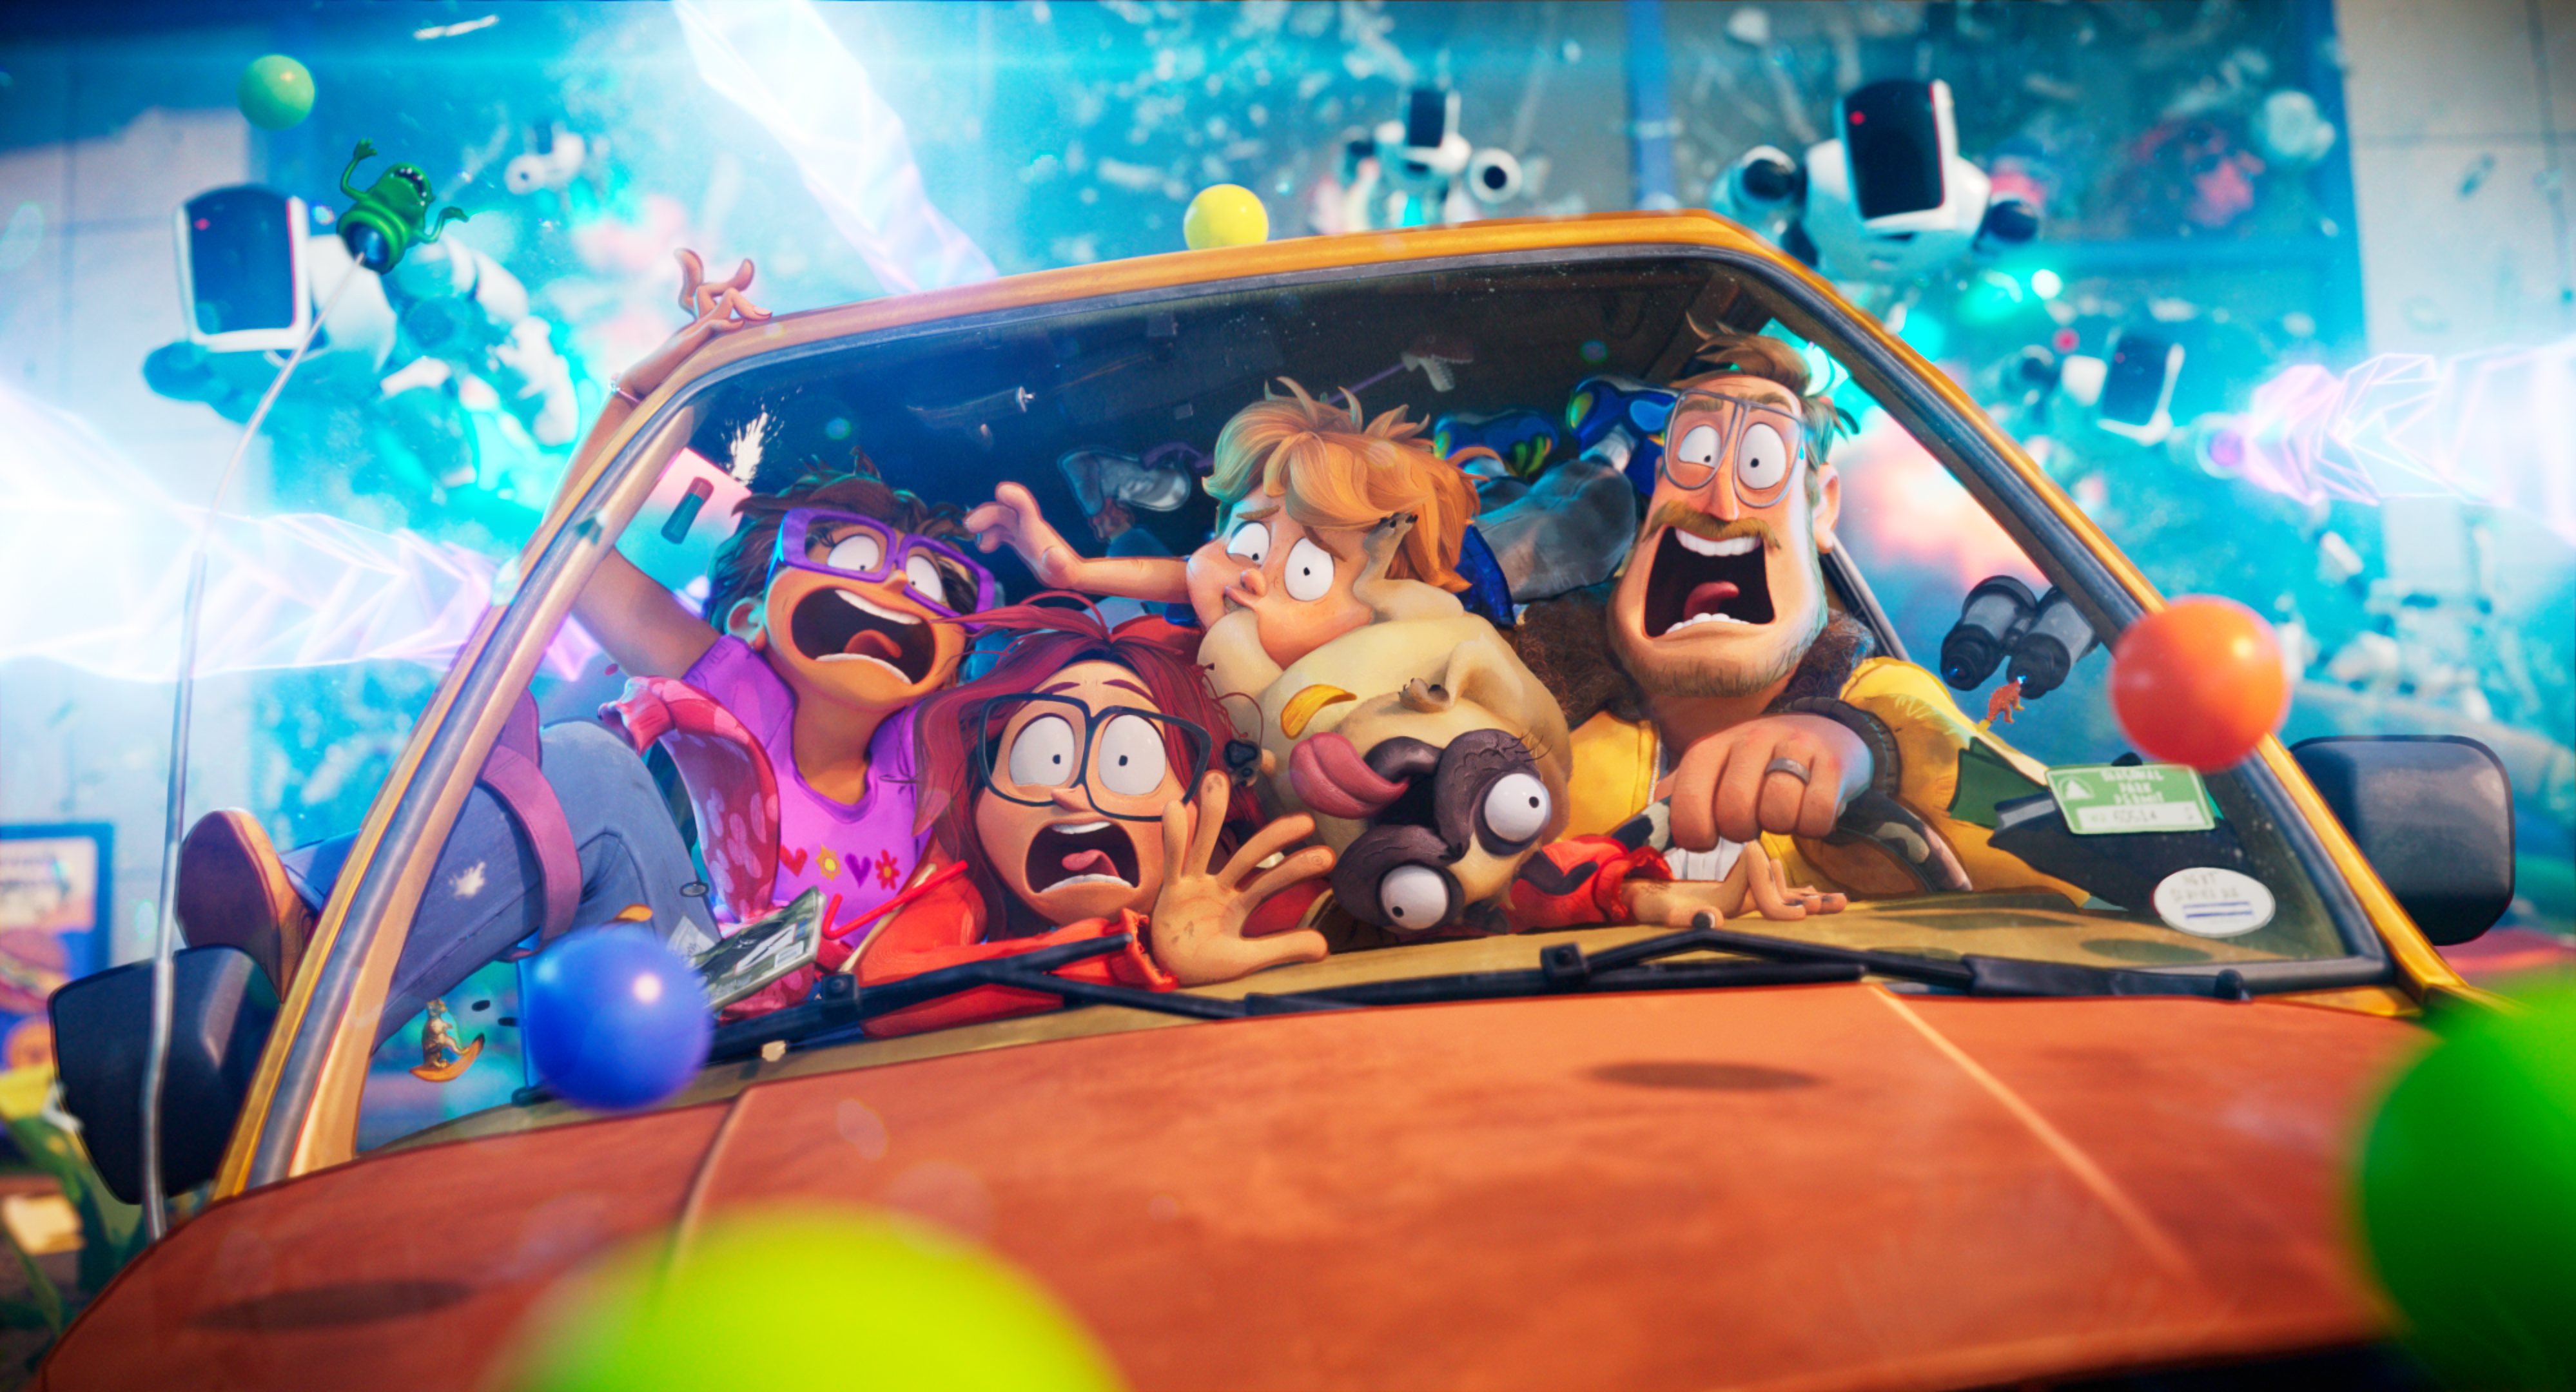 Film Review of The Mitchells vs The Machines starring Abbi Jacobson, Danny McBride, Maya Rudolph, Mike Rianda, Eric Andre and Olivia Colman